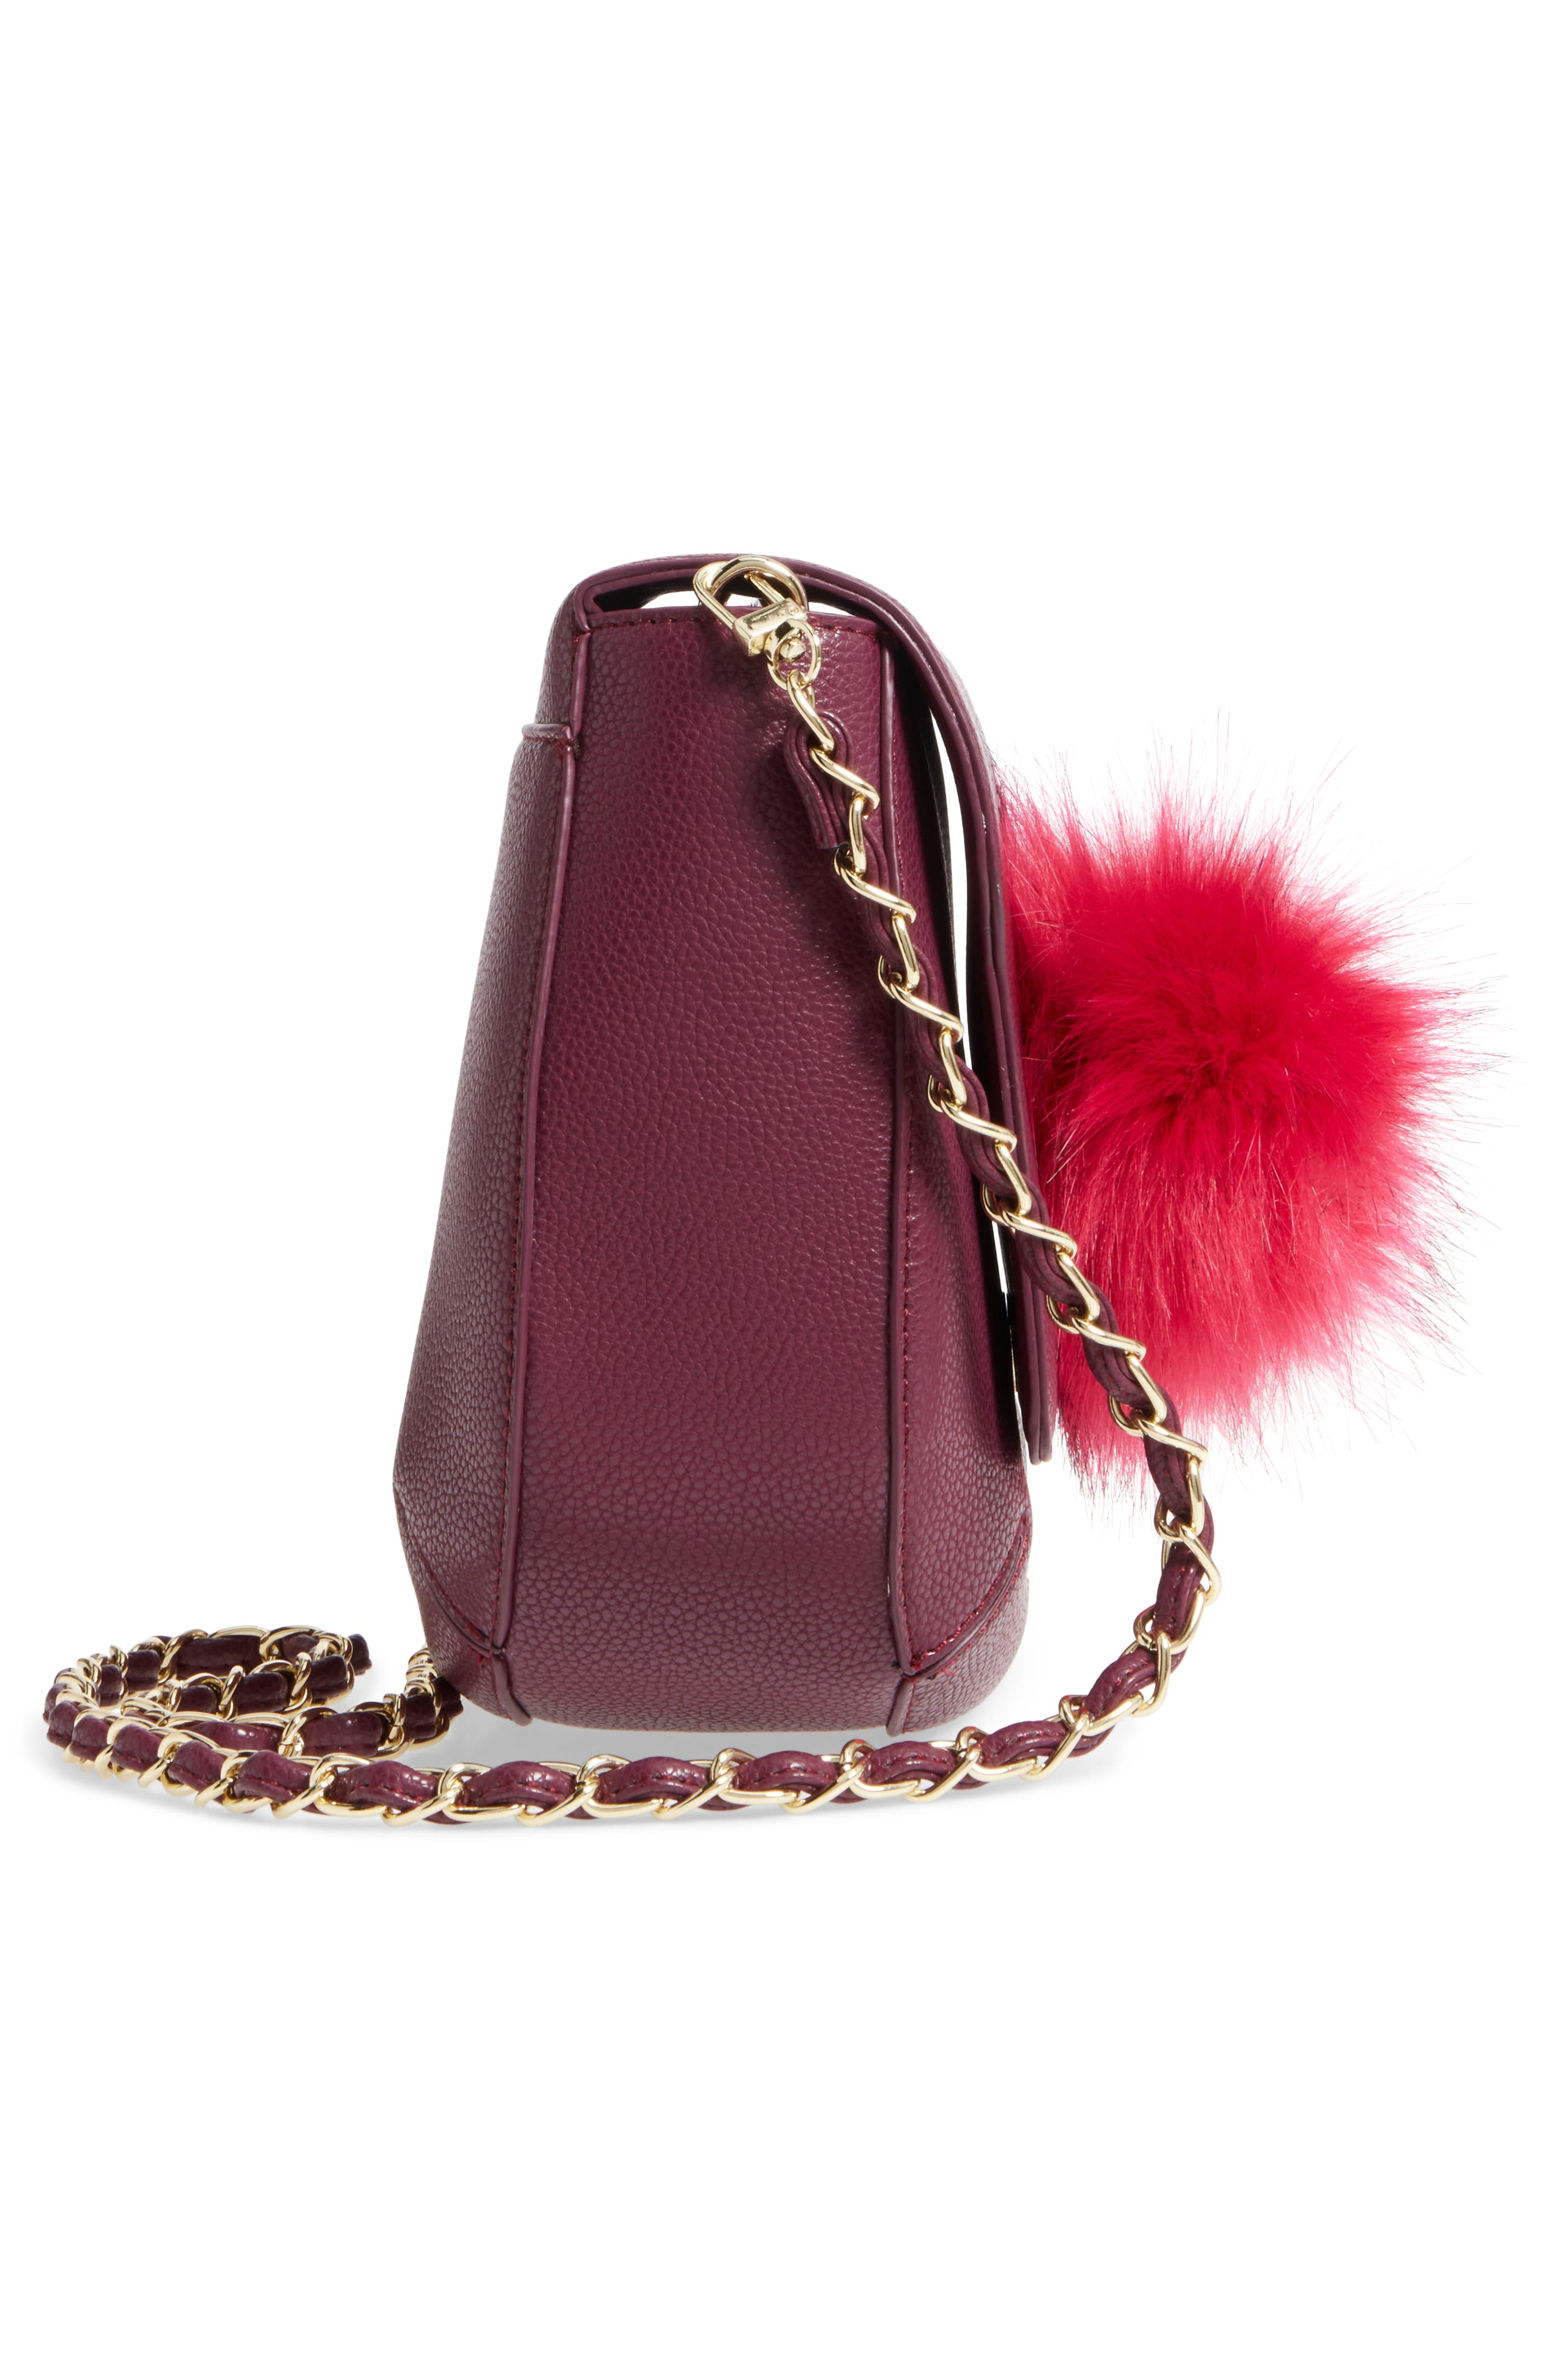 Isa Faux Leather Crossbody Bag,                             Alternate thumbnail 5, color,                             Berry Sweet/ Boysenberry